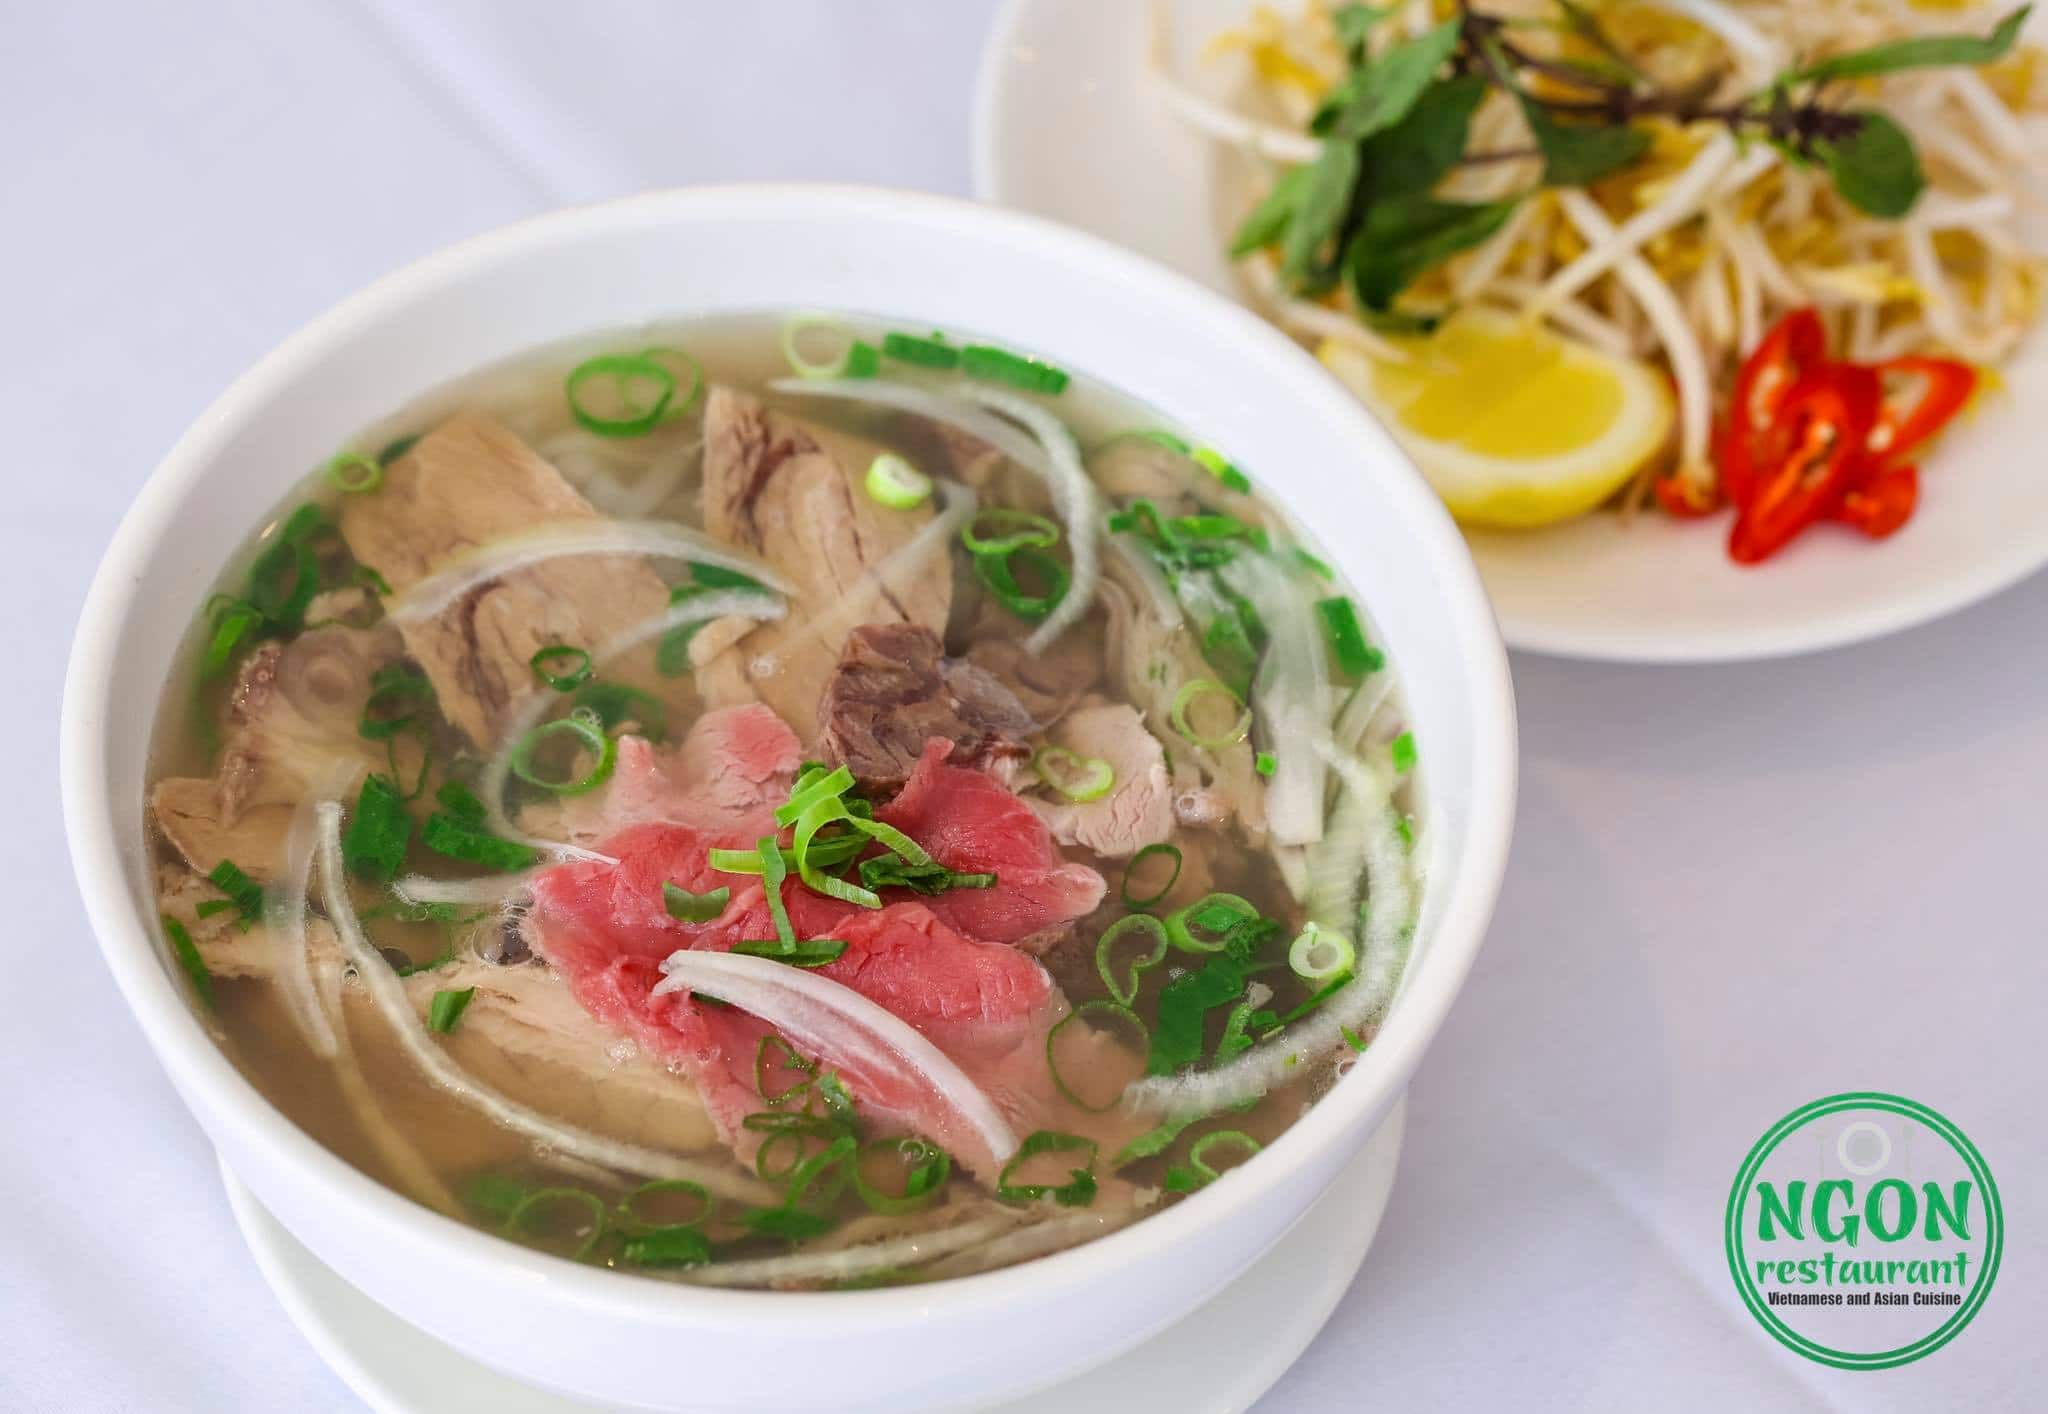 Ngon Restaurant Vietnamese And Asian Cuisine | 332 Highett Road, Moorabbin & Highett, Highett, VIC 3190 | +61 3 9553 4838